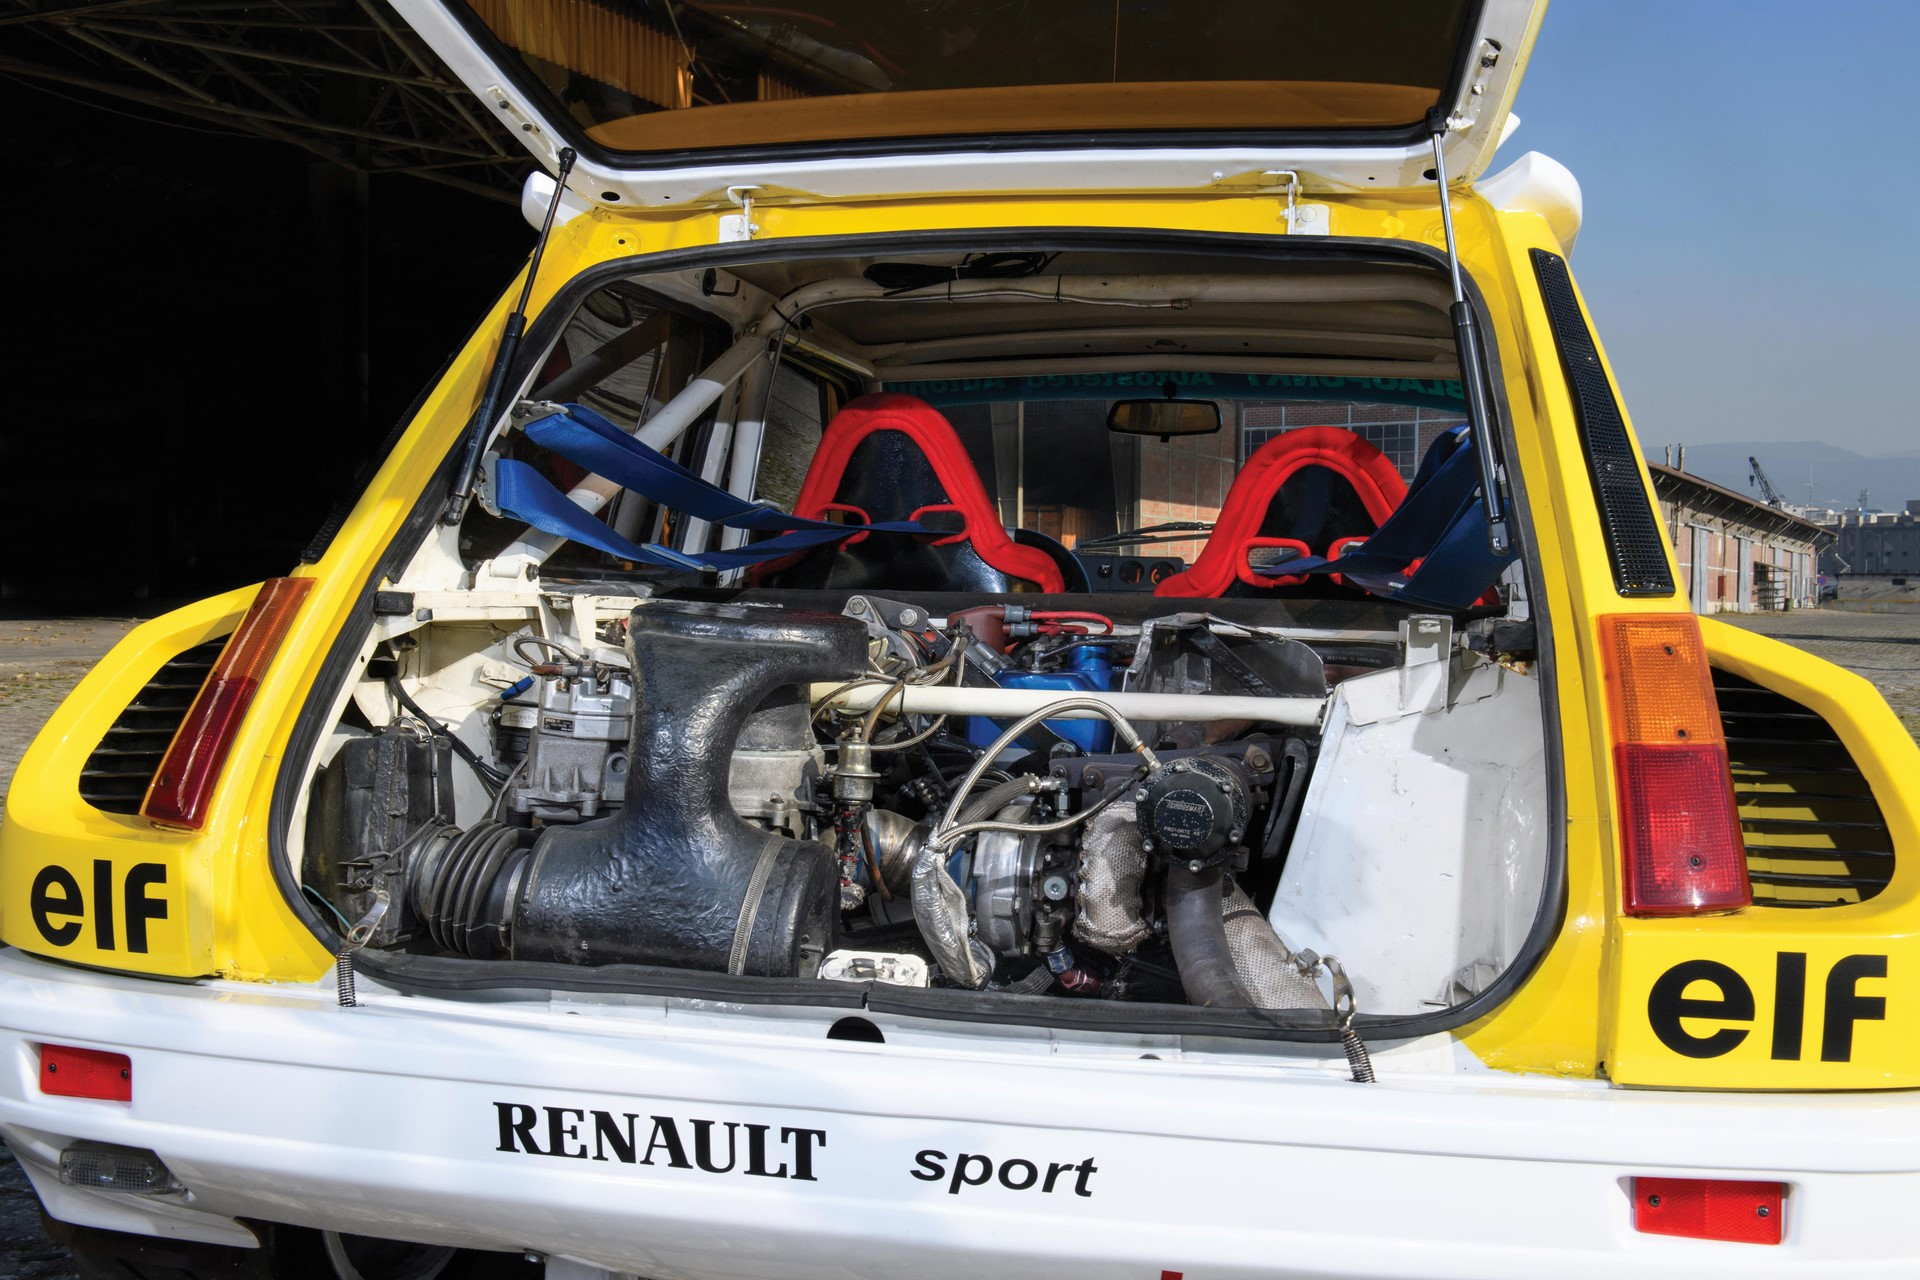 Renault 5 Turbo Tour de Corse (21)